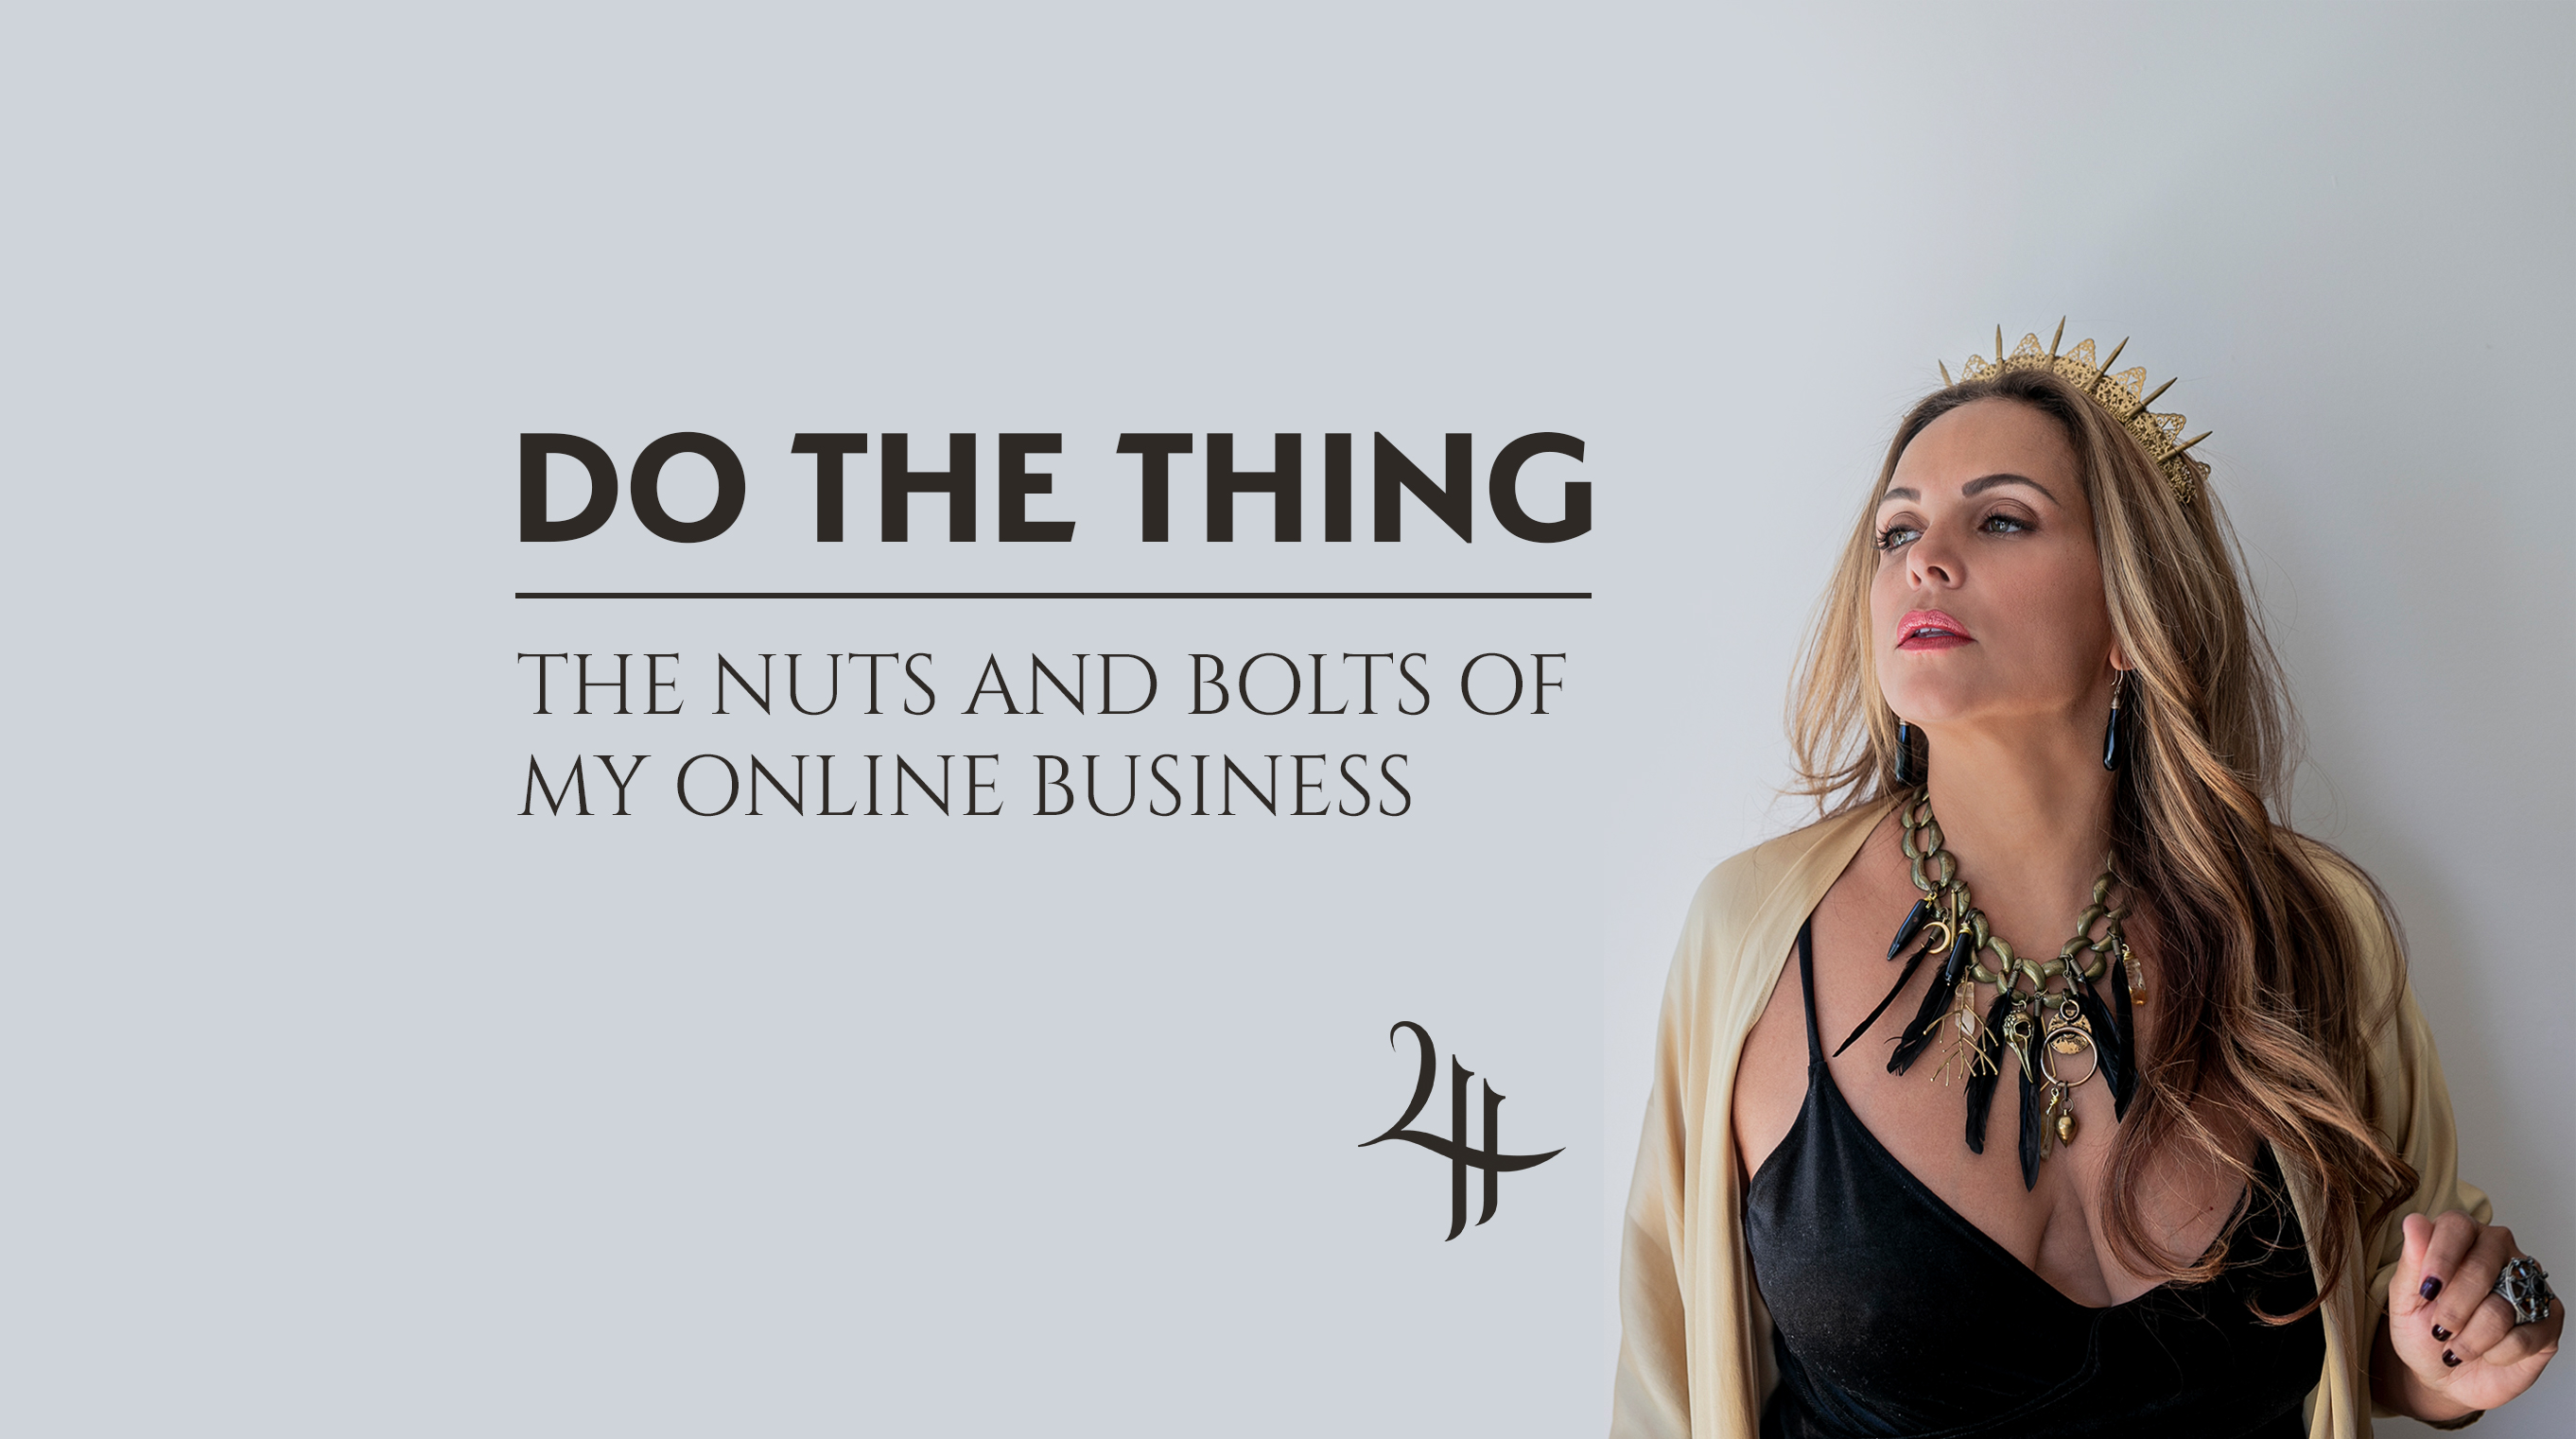 Do The Thing: The Nuts and Bolts of my Online Business